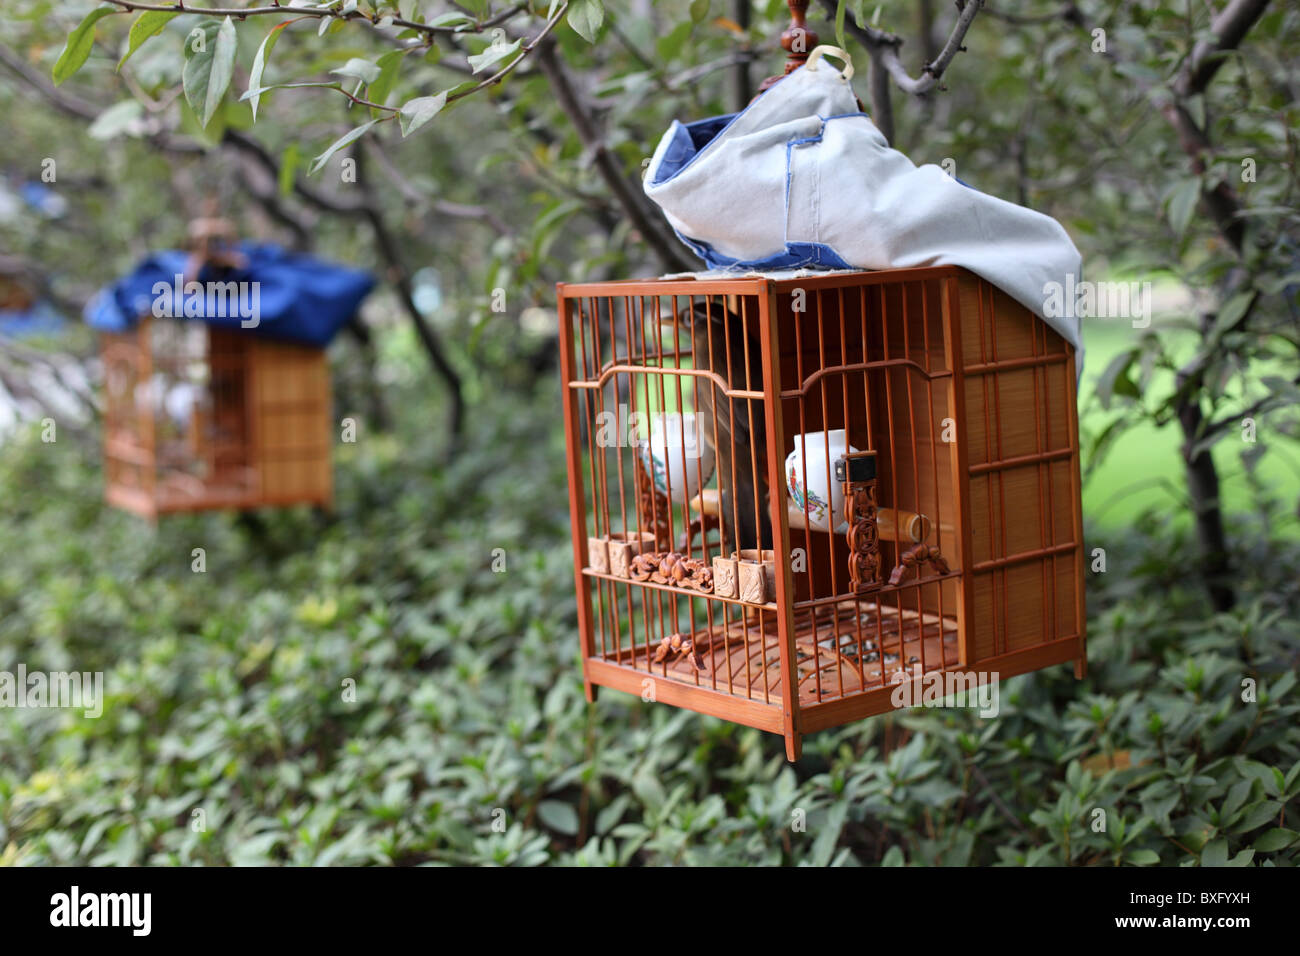 Songbird in cage. Shanghai People's Square Park, China - Stock Image